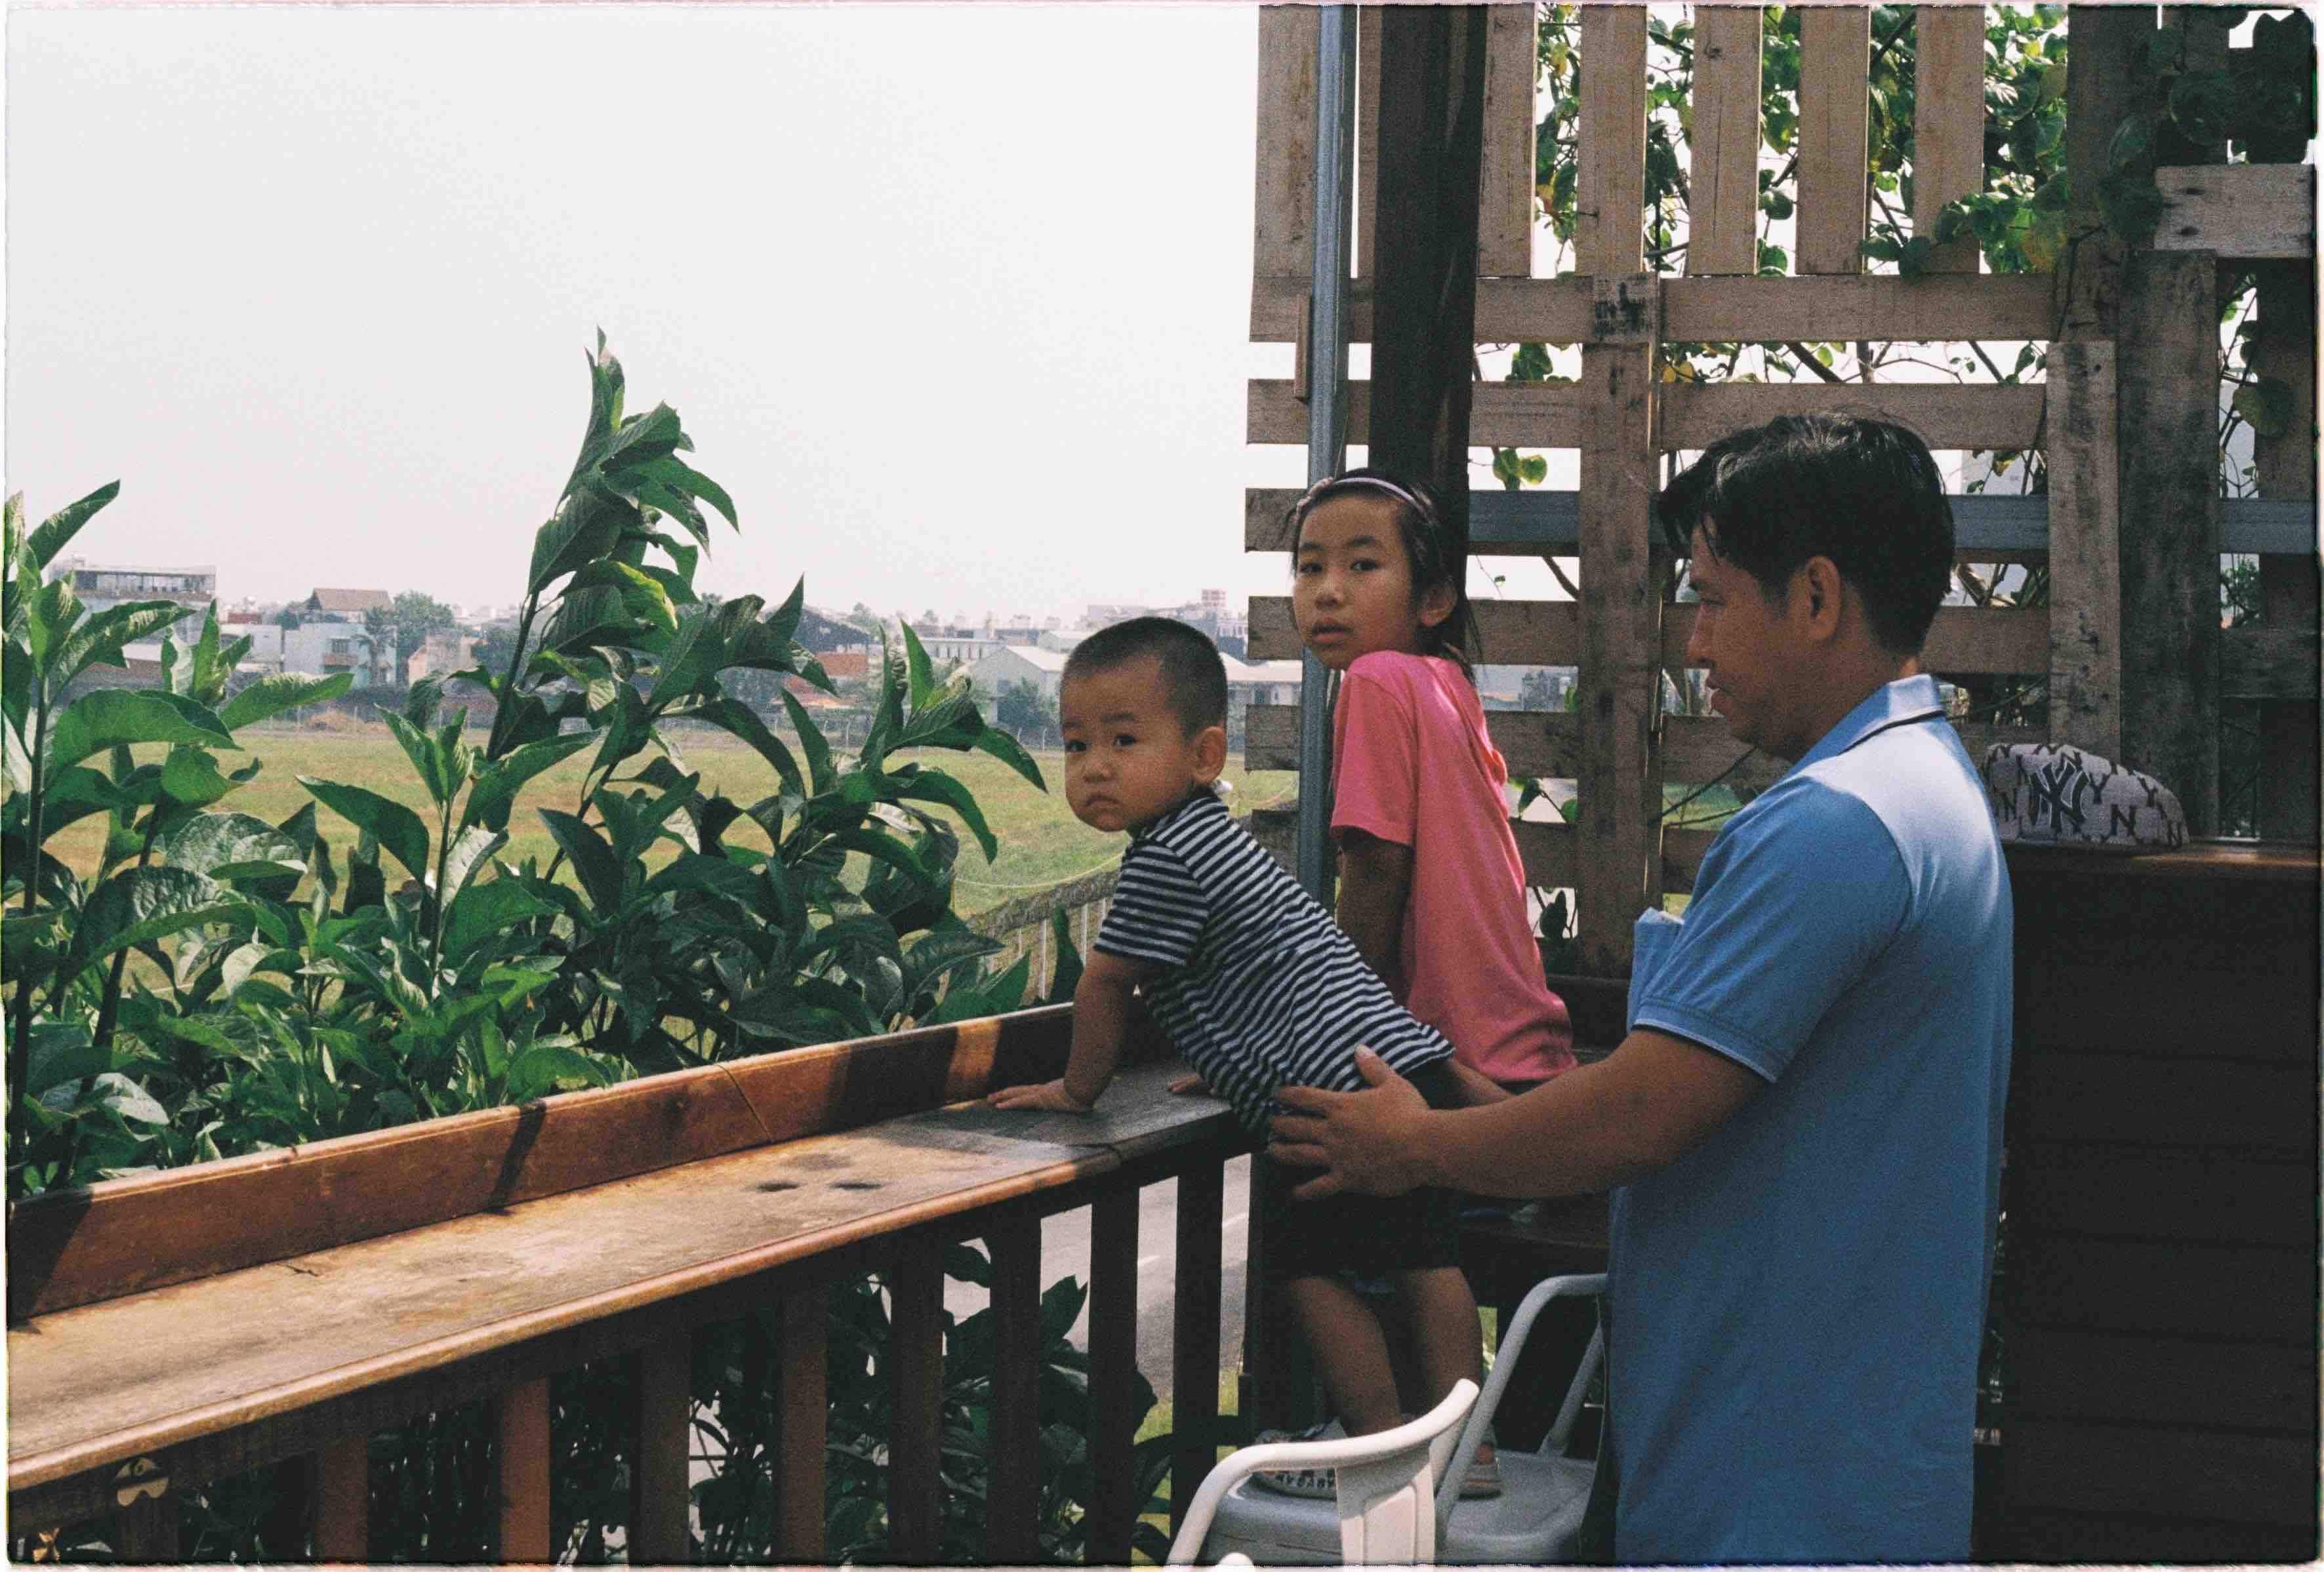 A man holds his children as they watch a plane fly by at Phen's café in in Go Vap District, Ho Chi Minh City. Photo: Linh To / Tuoi Tre